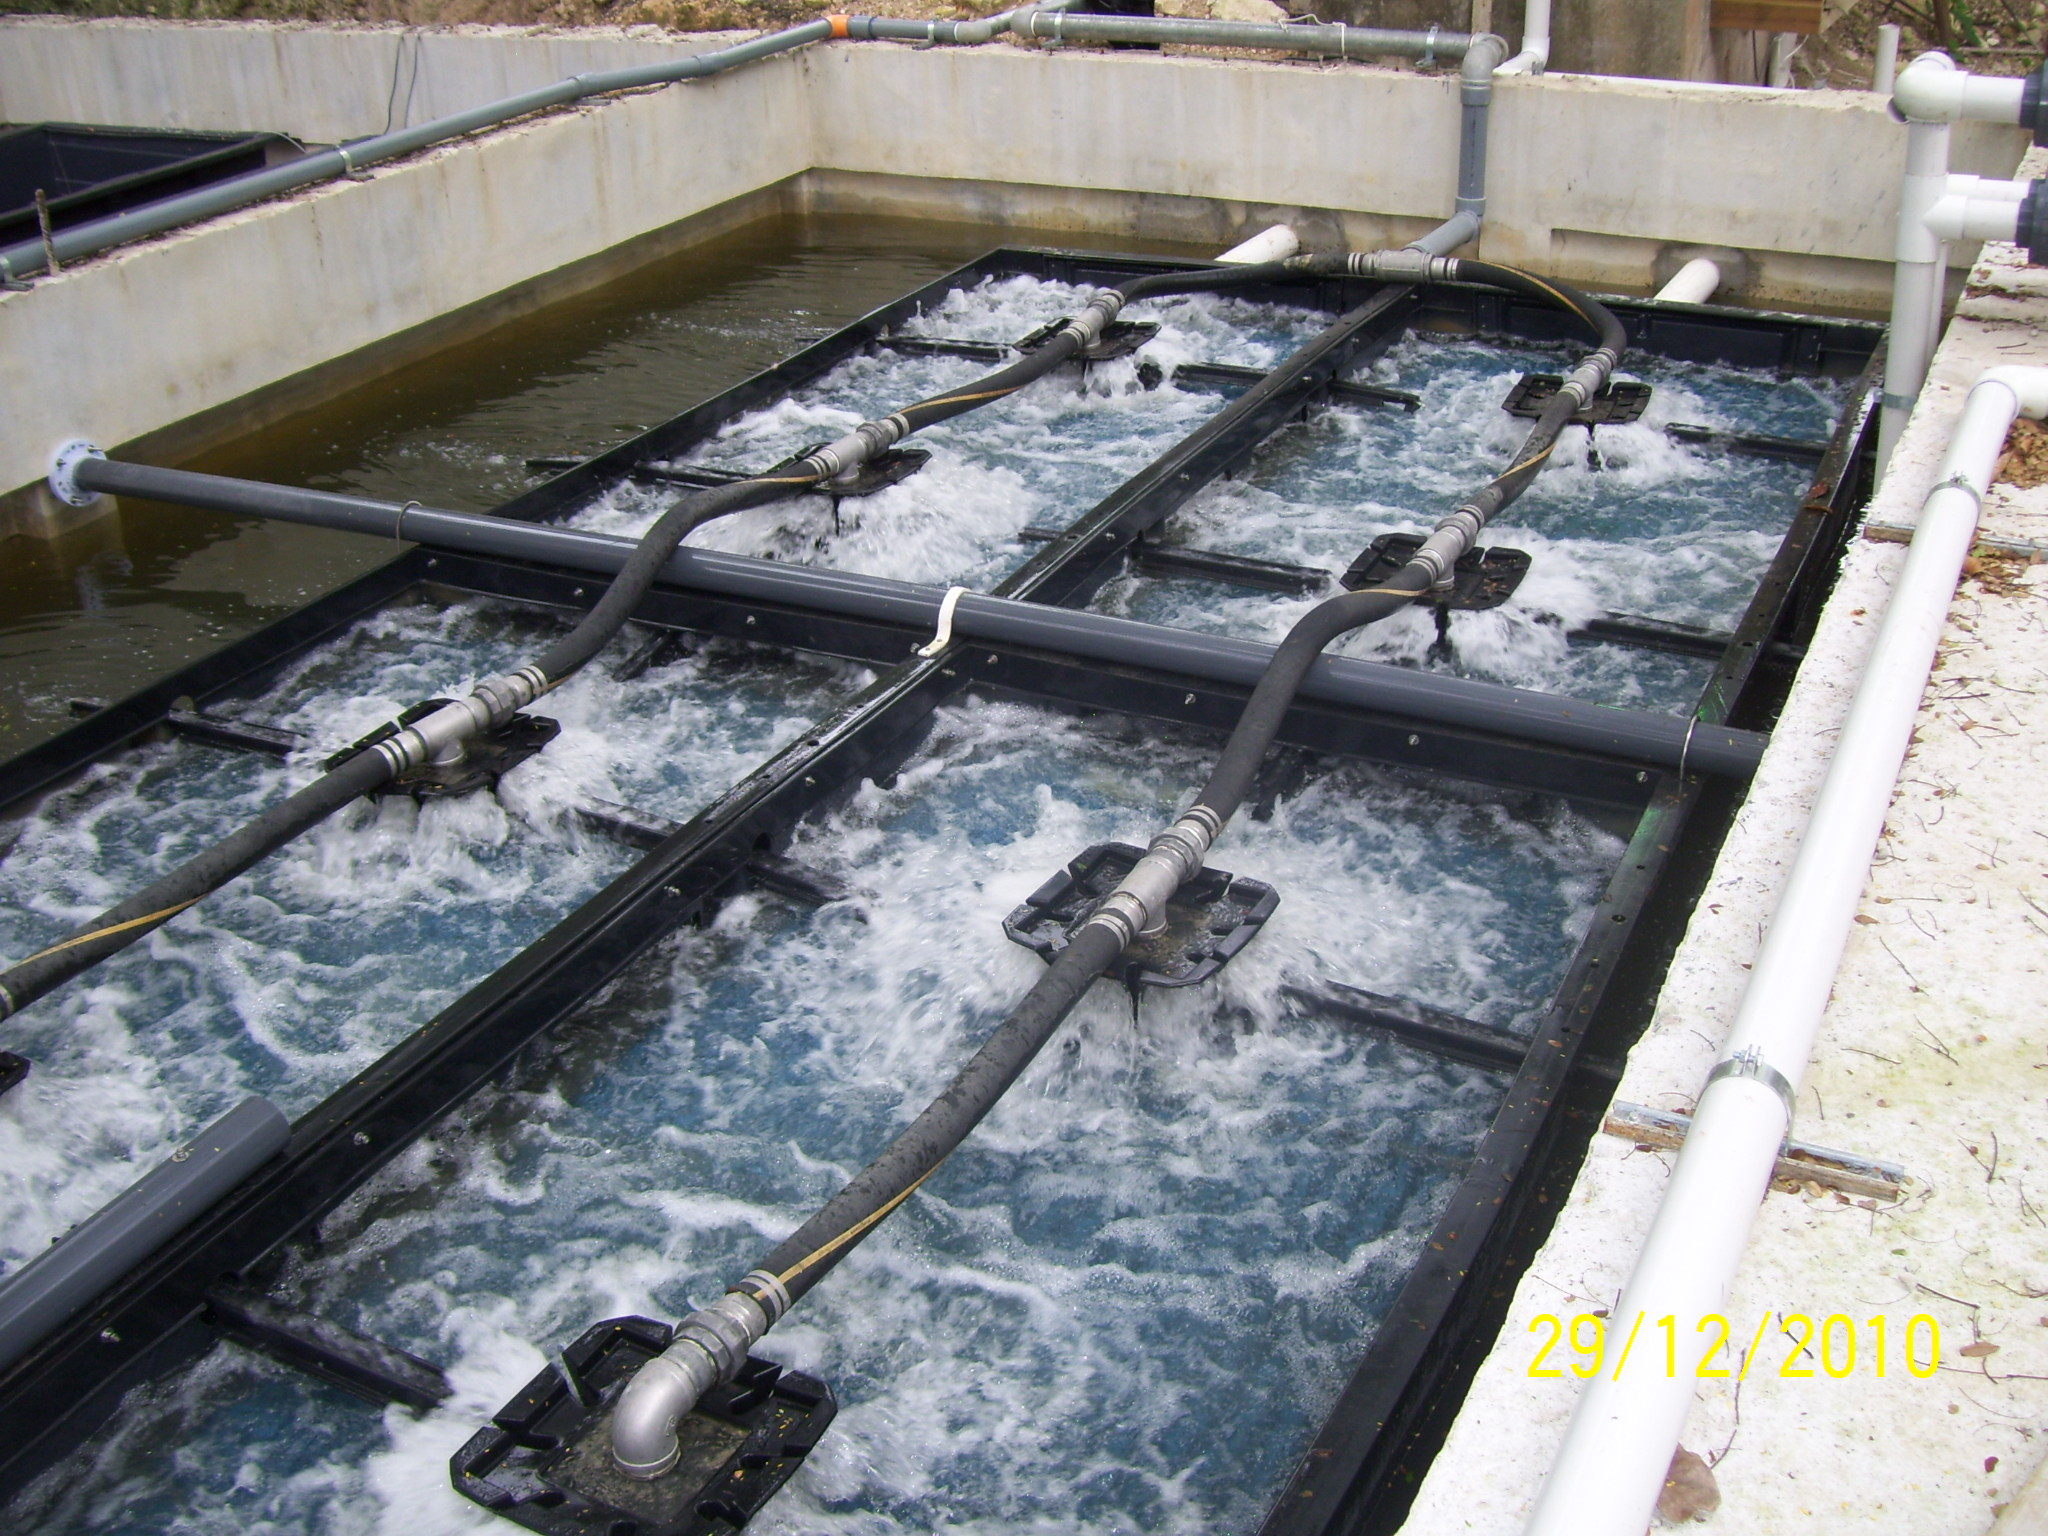 Community Wastewater Amp Water Reuse Treatment System By